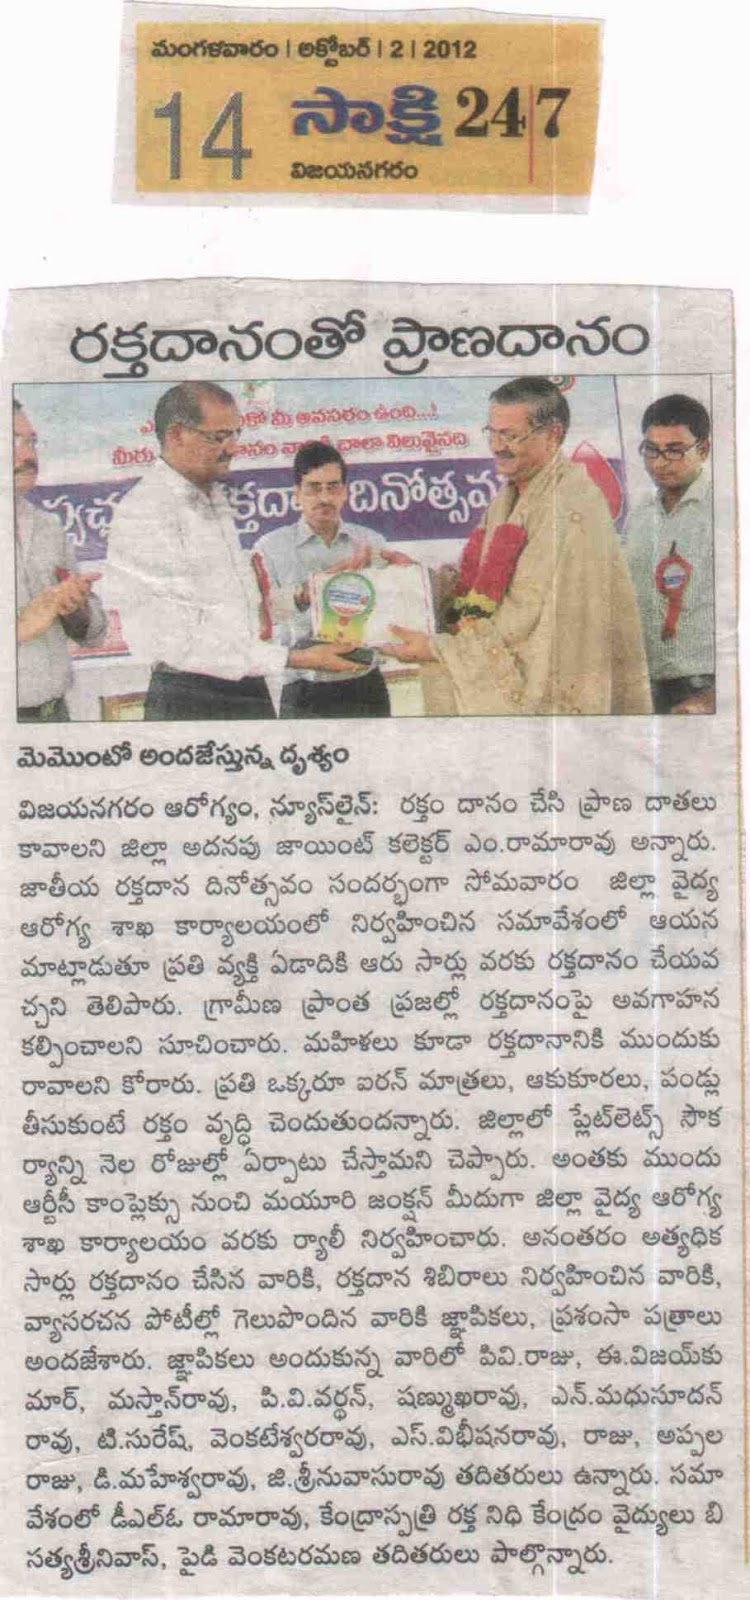 dapcu speak 2012 district aids prevention control unit organized national voluntary blood donors day event at vizianagaram on 1st 2012